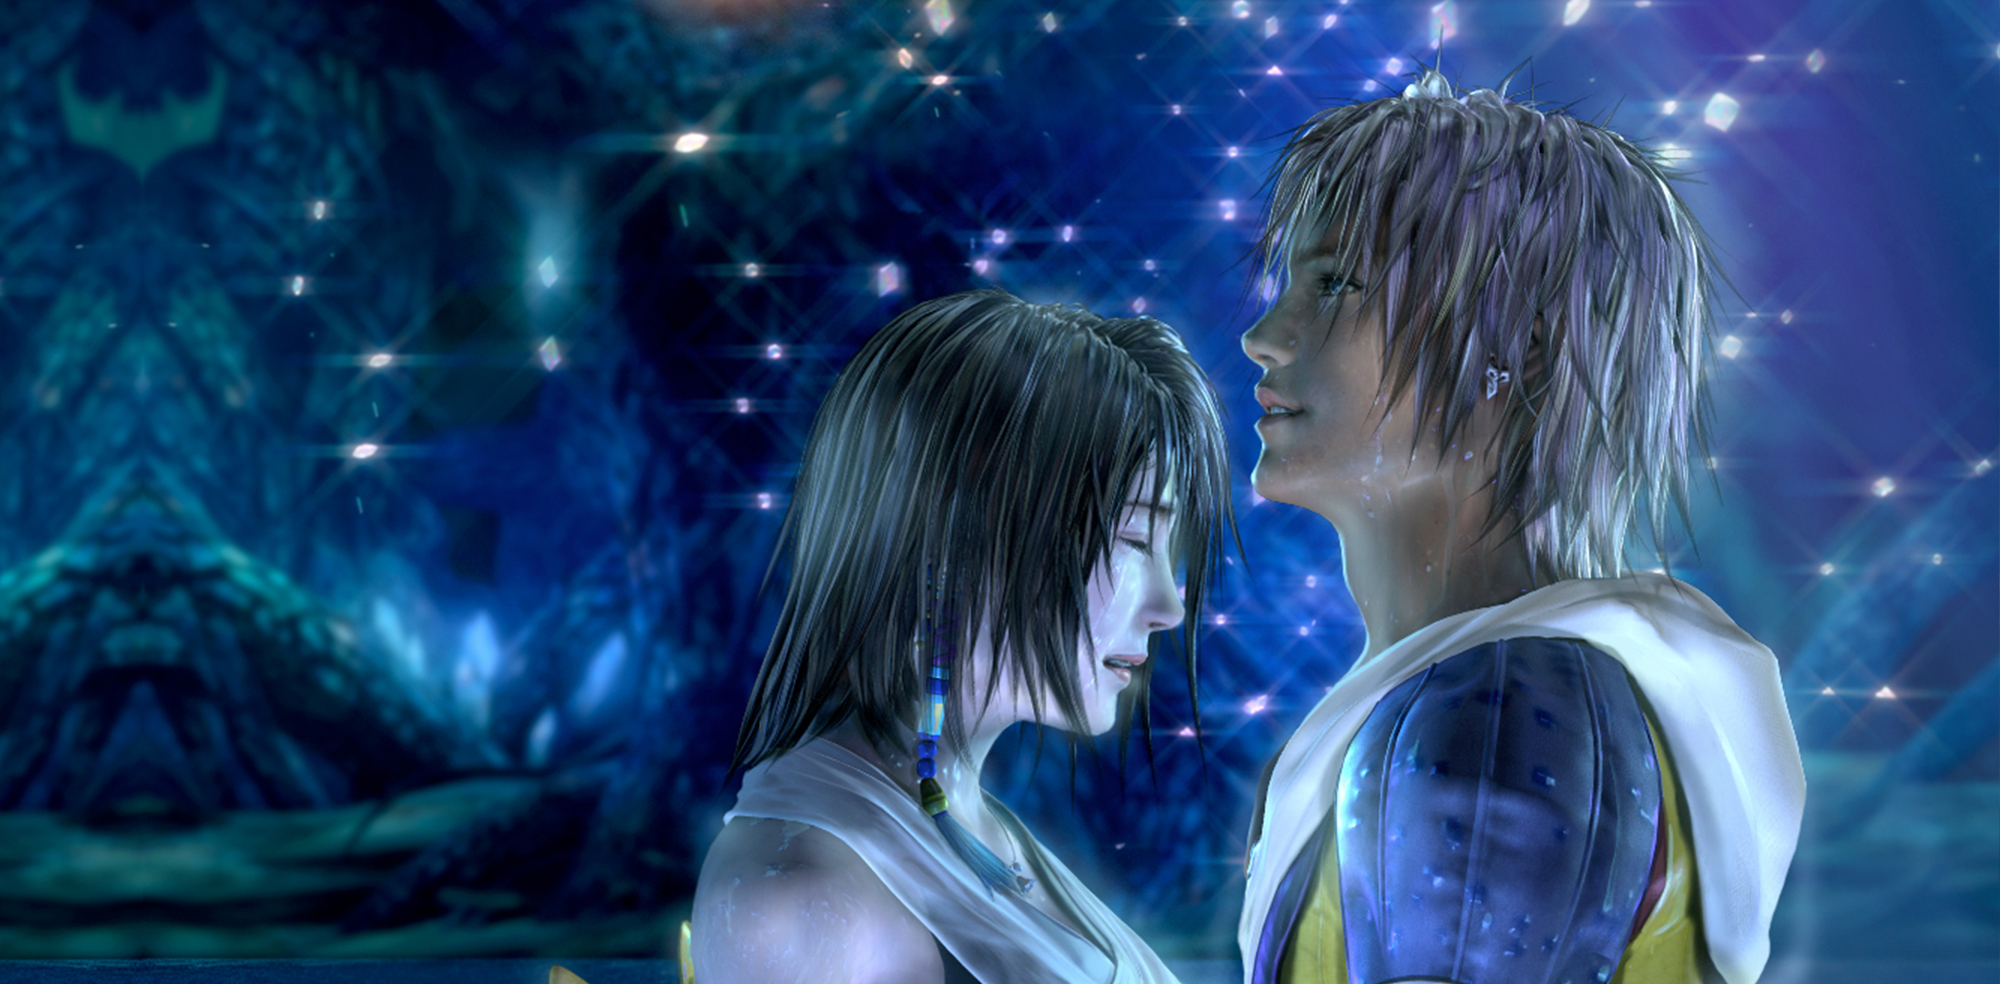 X X 2 Final Fantasy X X 2 Hd Remaster Review Nova Crystallis